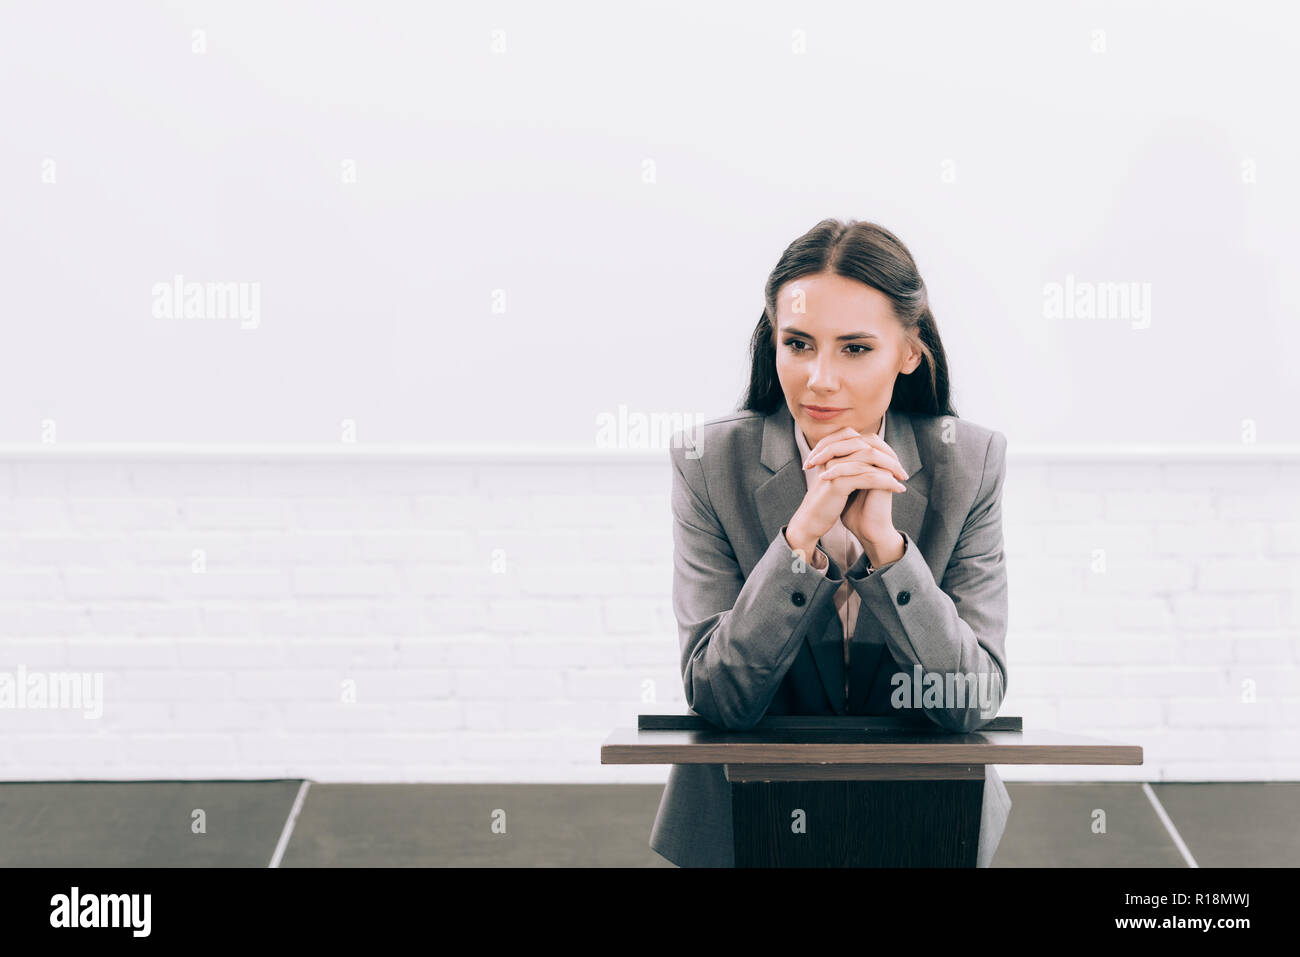 attractive lecturer leaning on podium tribune during seminar in conference hall - Stock Image